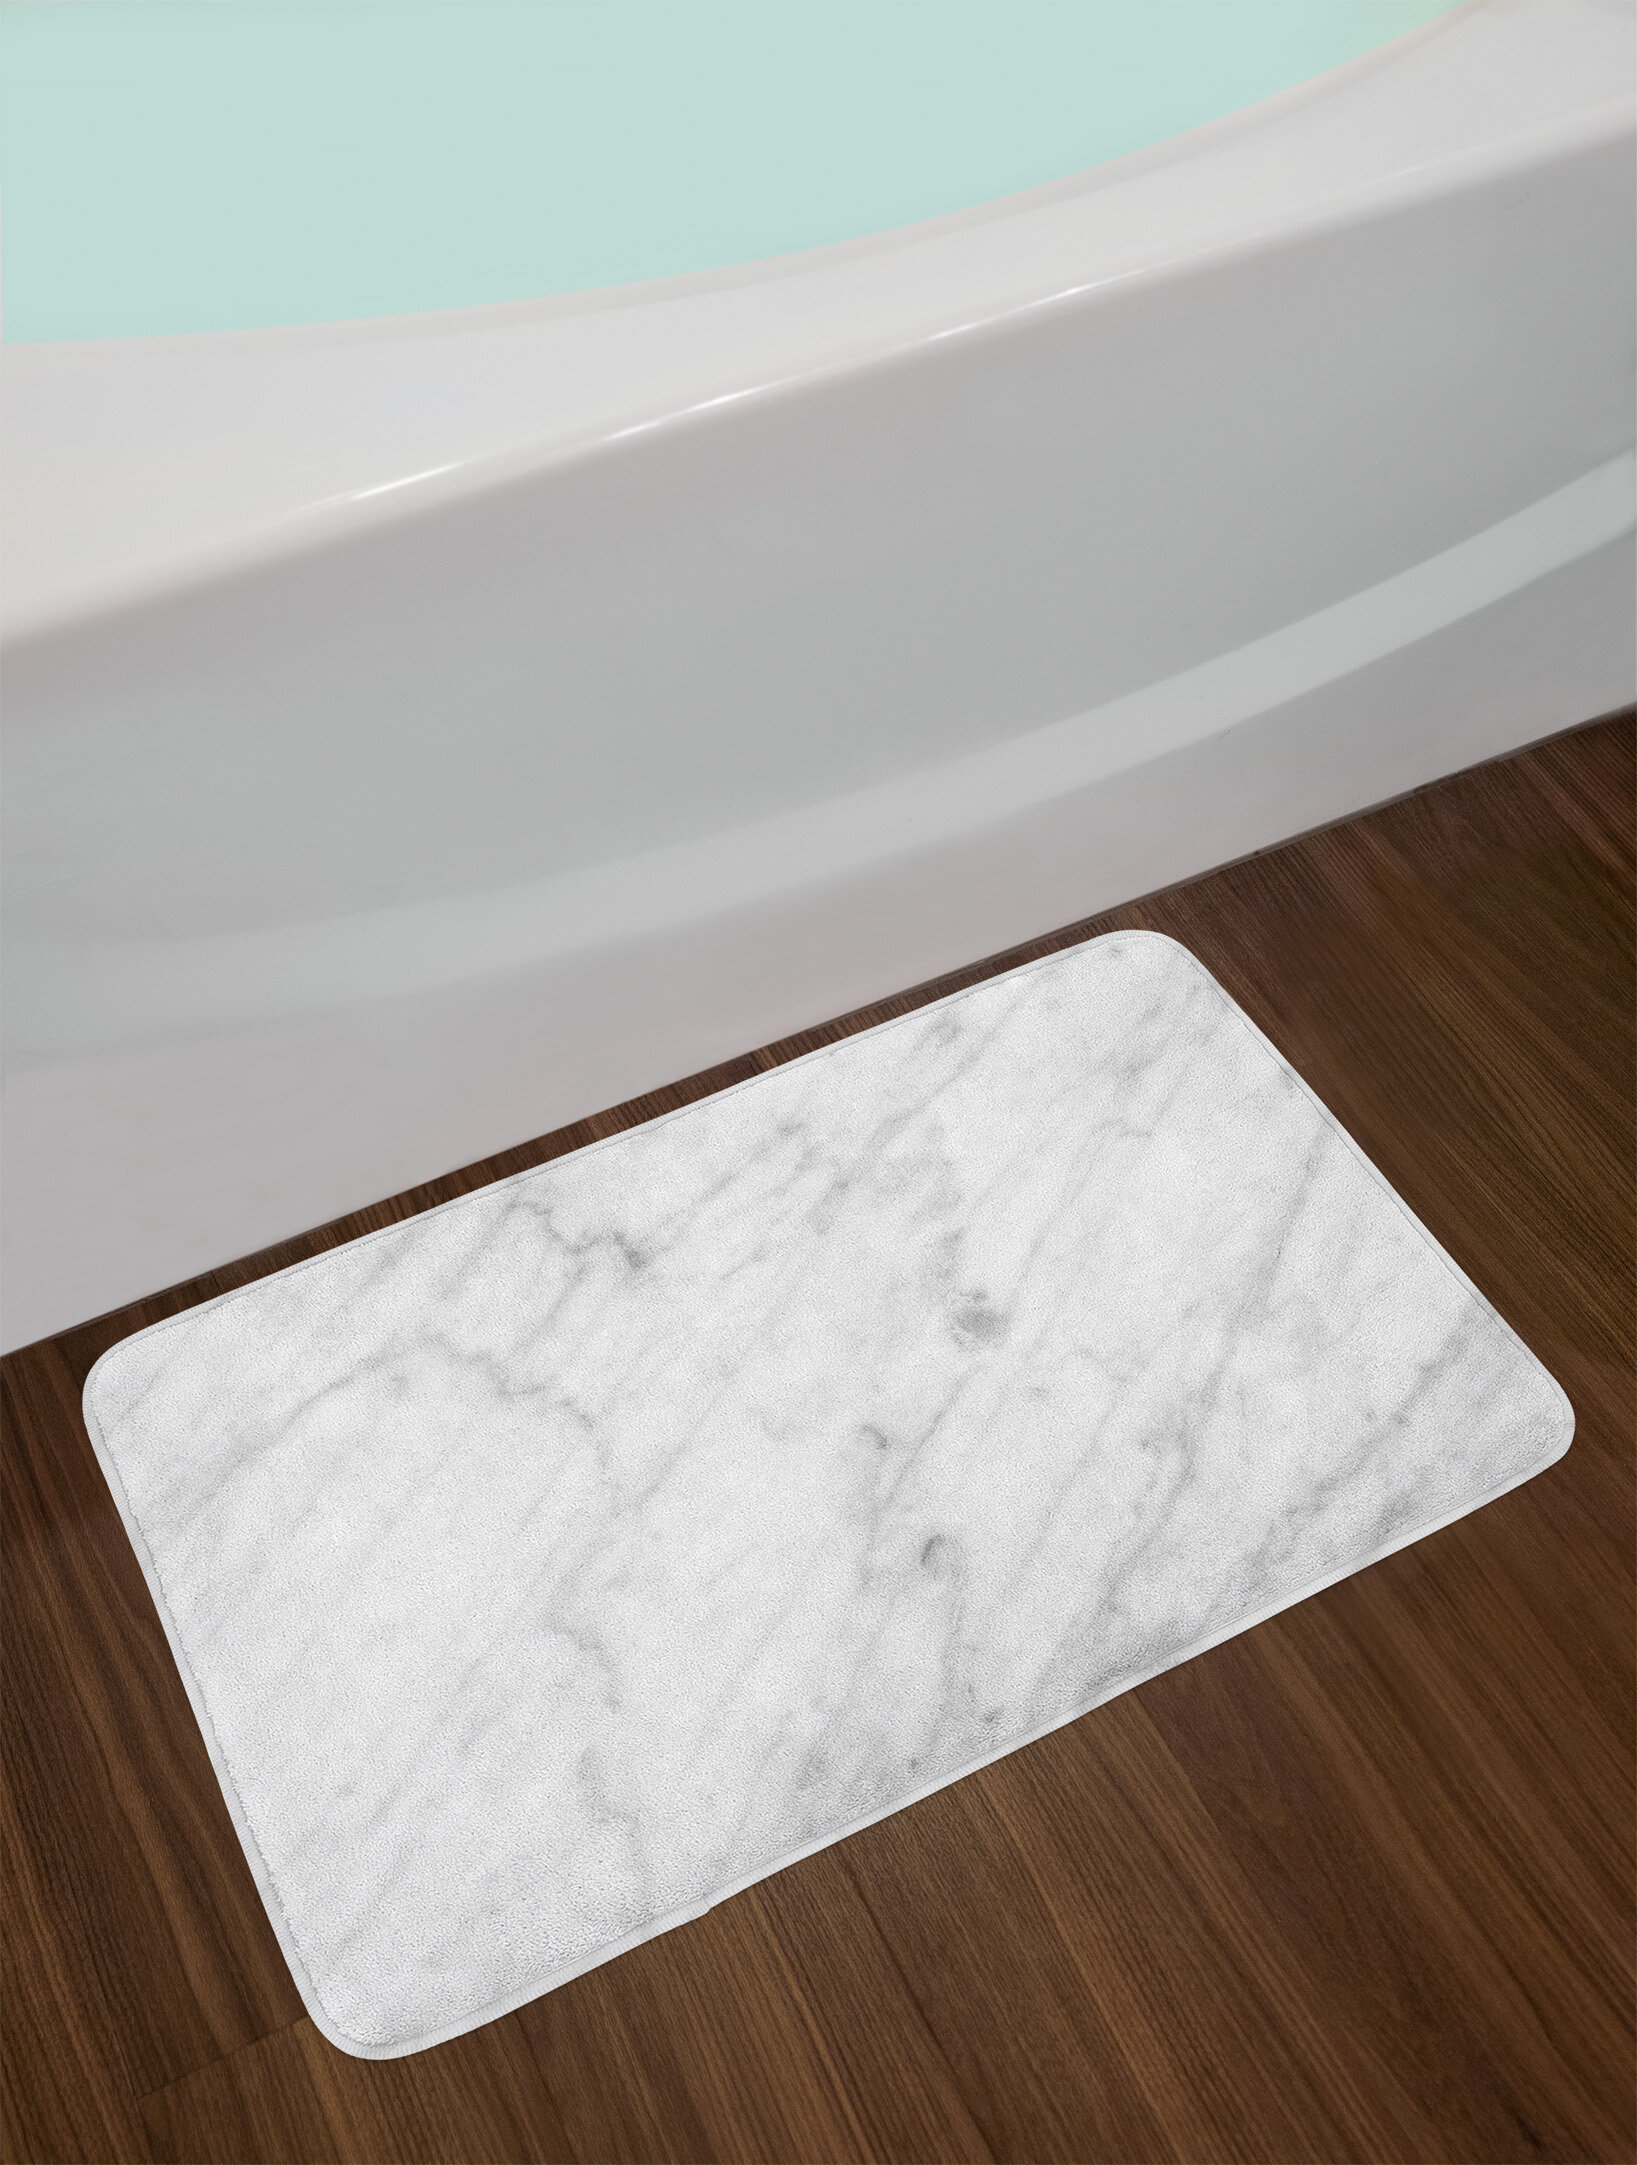 East Urban Home Carrara Dust Grey White Marble Bath Rug Wayfair